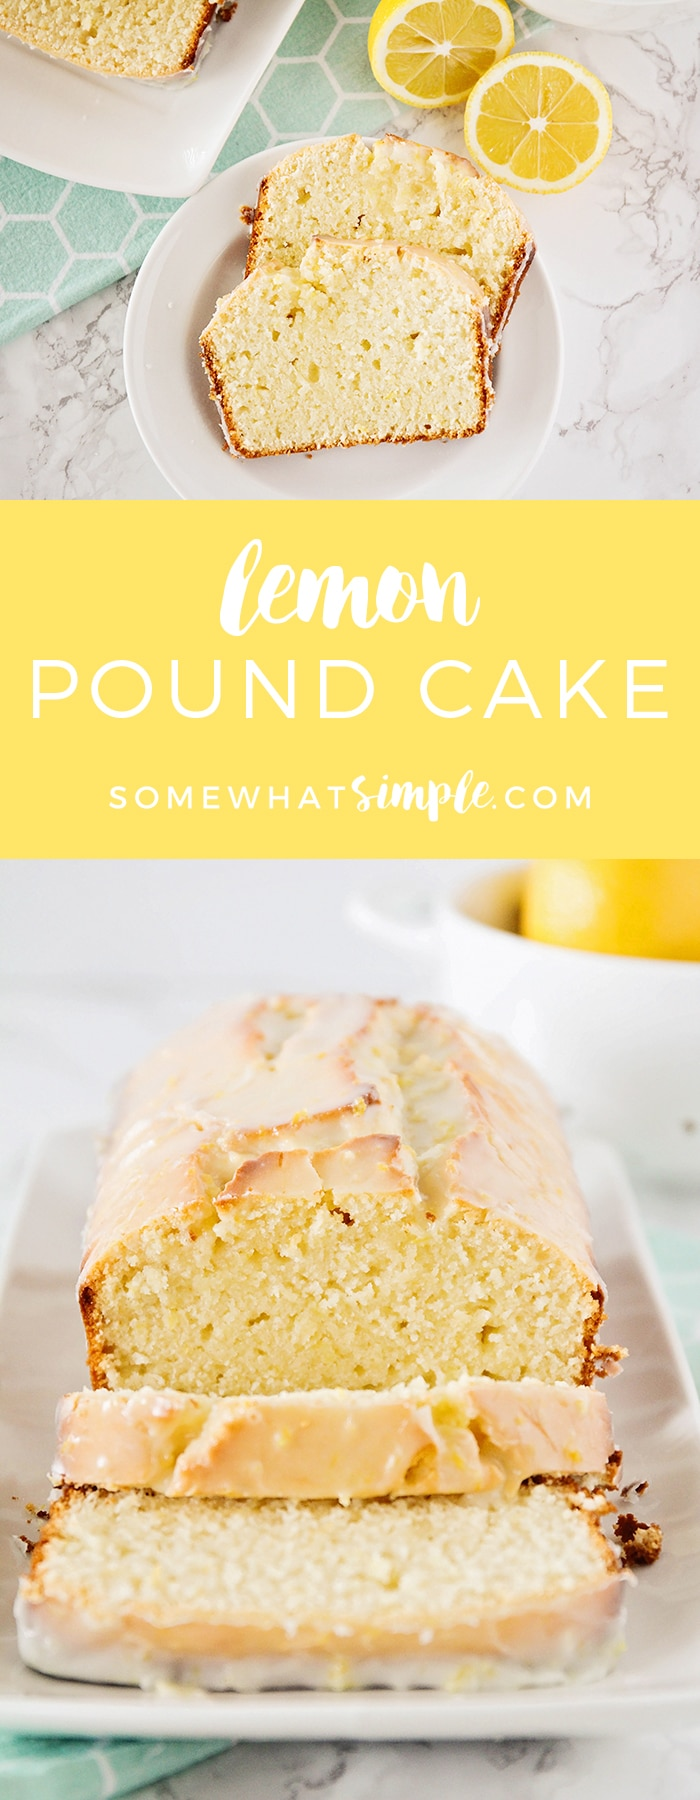 This delightfully sweet and tart lemon pound cake recipe is the perfect dessert for spring! It's bursting with fresh lemon flavor, and easy to make, too! #dessert #dessertrecipes #recipe #easyrecipe #bread #lemon  via @somewhatsimple